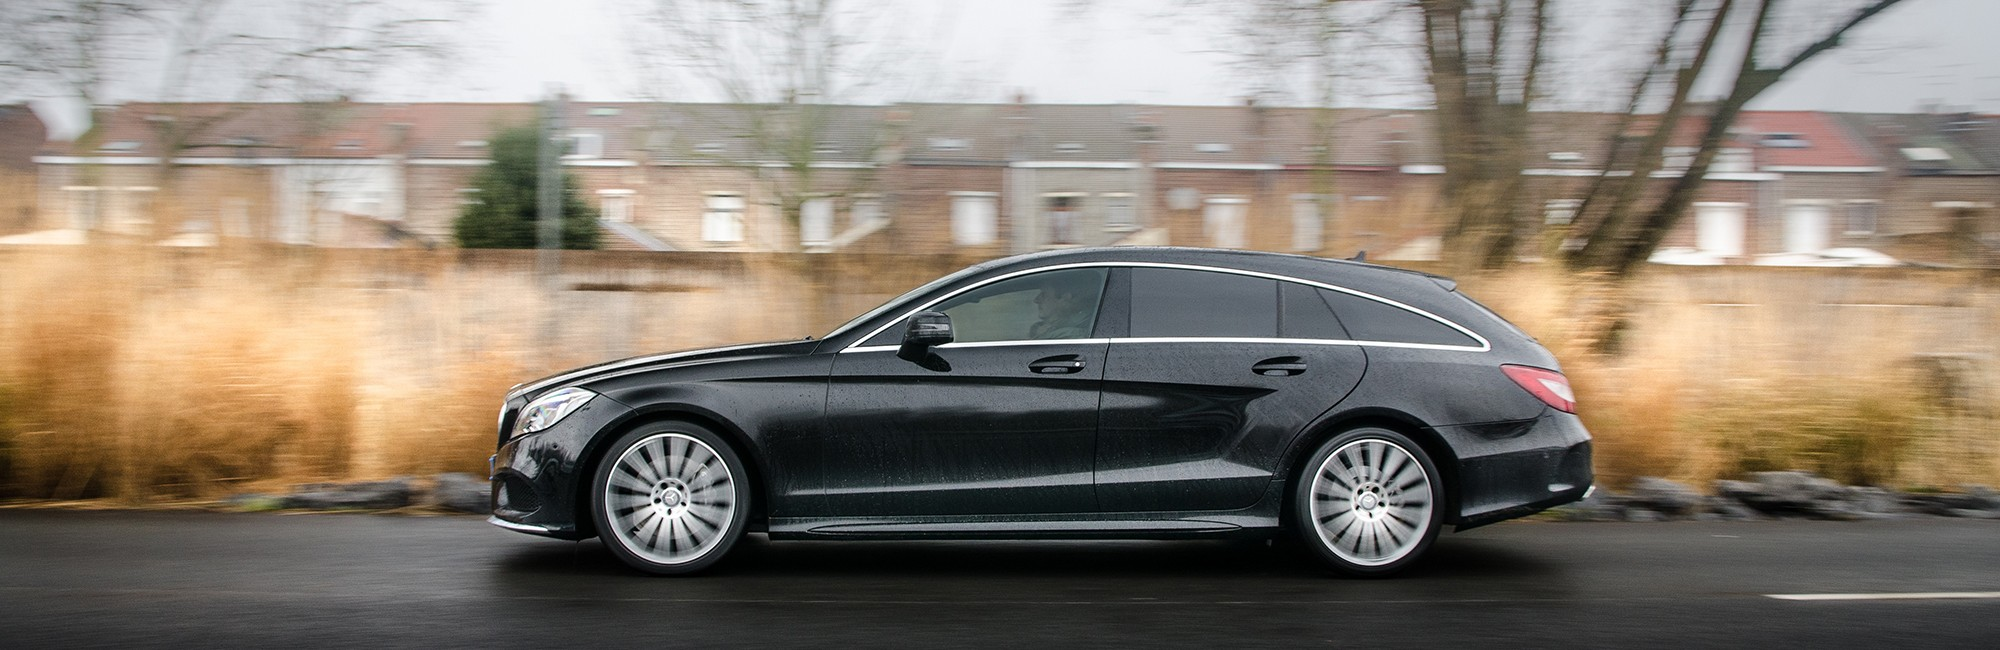 Classe CLS Shooting Brake